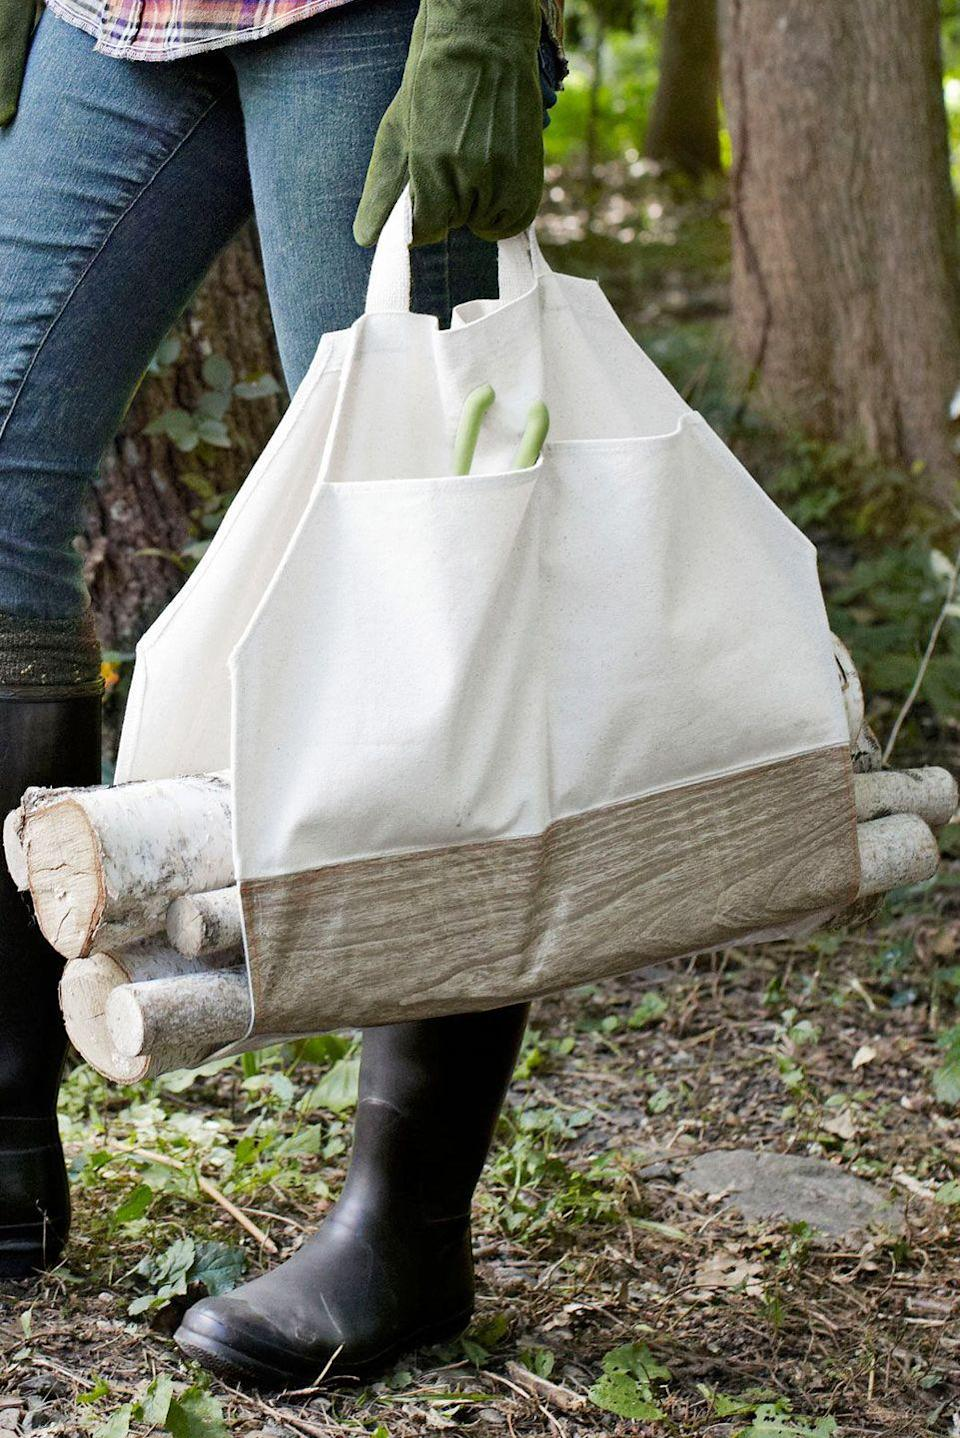 """<p>Give Dad a helping hand with this easy-to-make piece.</p><p><strong>Step 1:</strong> Turn a canvas bag inside out, then use a seam ripper to undo the gusseted corners and cut the bag so that it lays flat.</p><p><strong>Step 2:</strong> Lay the bag out and on the interior, use a pencil and a ruler to draw an 8 1/2-inch diagonal line across each of the bag's corners. Cut the bag along the lines, and discard corner pieces. Next, fold each cut edge over by 1/4 inch and topstitch in place.</p><p><strong>Step 3:</strong> Cut a piece of <a href=""""https://www.amazon.com/Freckled-Sage-Oilcloth-Tablecloth-Walnut/dp/B01FY7DW2G?tag=syn-yahoo-20&ascsubtag=%5Bartid%7C10050.g.1171%5Bsrc%7Cyahoo-us"""" rel=""""nofollow noopener"""" target=""""_blank"""" data-ylk=""""slk:faux bois oilcloth"""" class=""""link rapid-noclick-resp"""">faux bois oilcloth</a> that measures 18 1/4''L x 13 1/2""""W. Flip the bag over and use bright-orange thread to stitch the panel along the edges.</p><p><strong>Step 4:</strong> Reinforce the handles by folding each strap back on itself, and pin the strap in place, then stitch it together. Repeat for the second strap.</p><p><a class=""""link rapid-noclick-resp"""" href=""""https://www.amazon.com/Rhode-Island-Novelty-JATOTLG-12-75-Inch/dp/B007N2R3EO/?tag=syn-yahoo-20&ascsubtag=%5Bartid%7C10050.g.1171%5Bsrc%7Cyahoo-us"""" rel=""""nofollow noopener"""" target=""""_blank"""" data-ylk=""""slk:SHOP CANVAS BAGS"""">SHOP CANVAS BAGS</a></p>"""